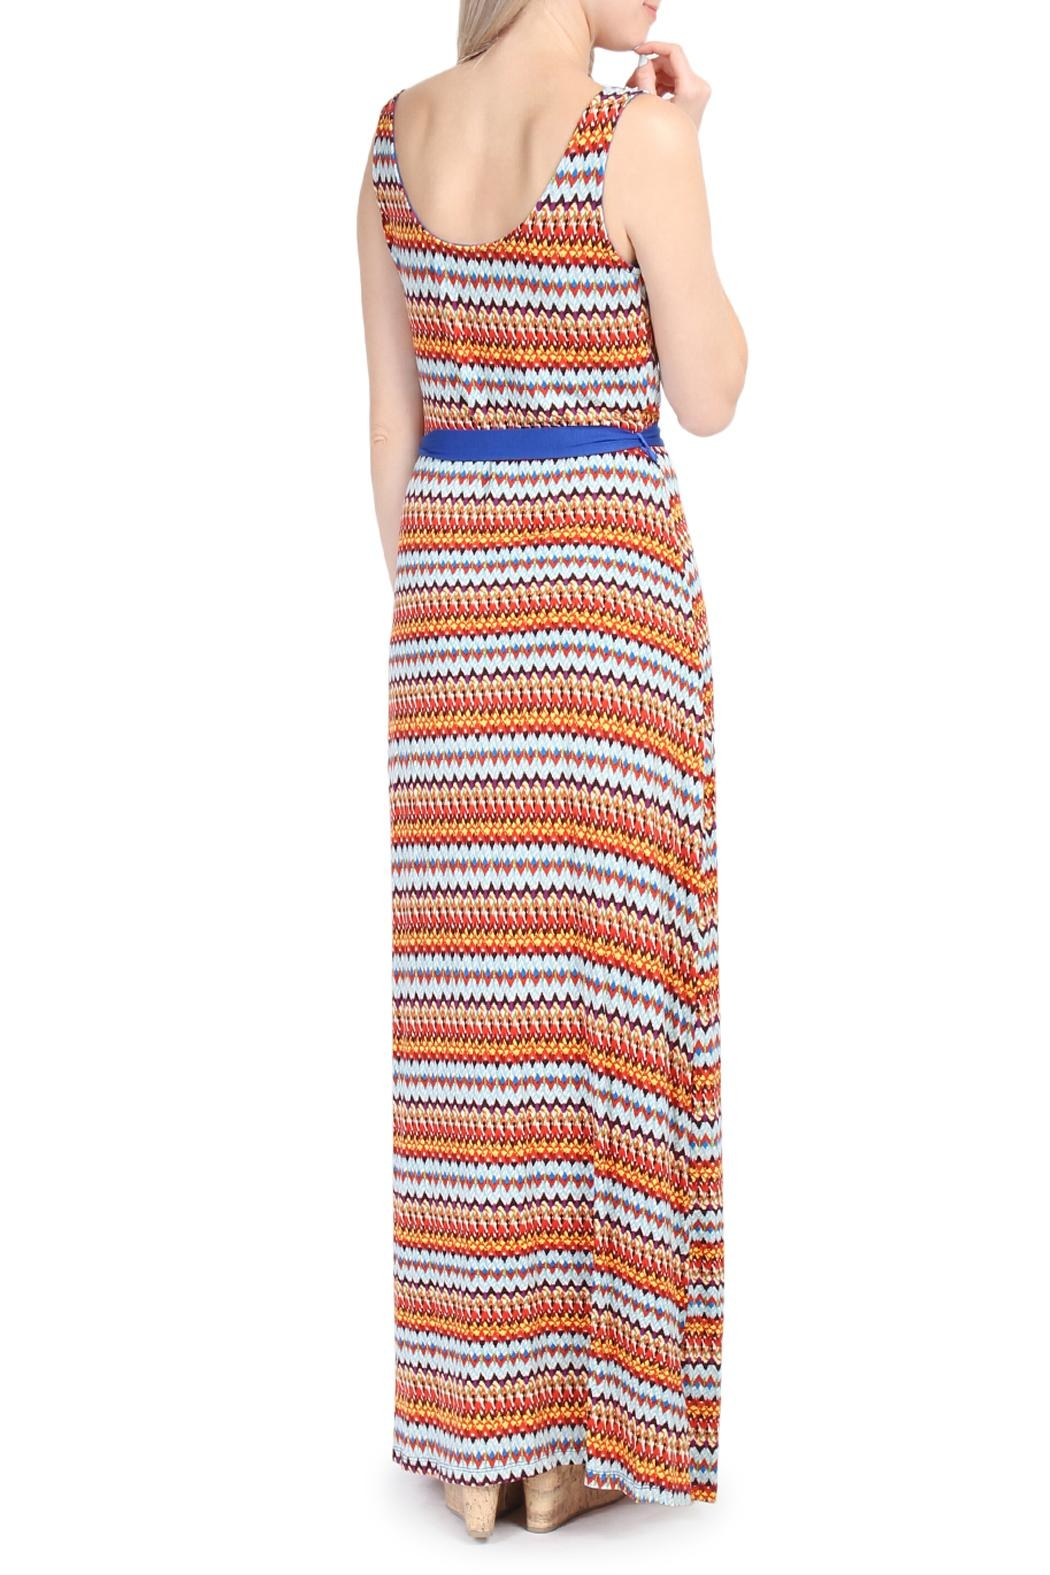 Riah Fashion Tribal Print Maxi Dress - Side Cropped Image